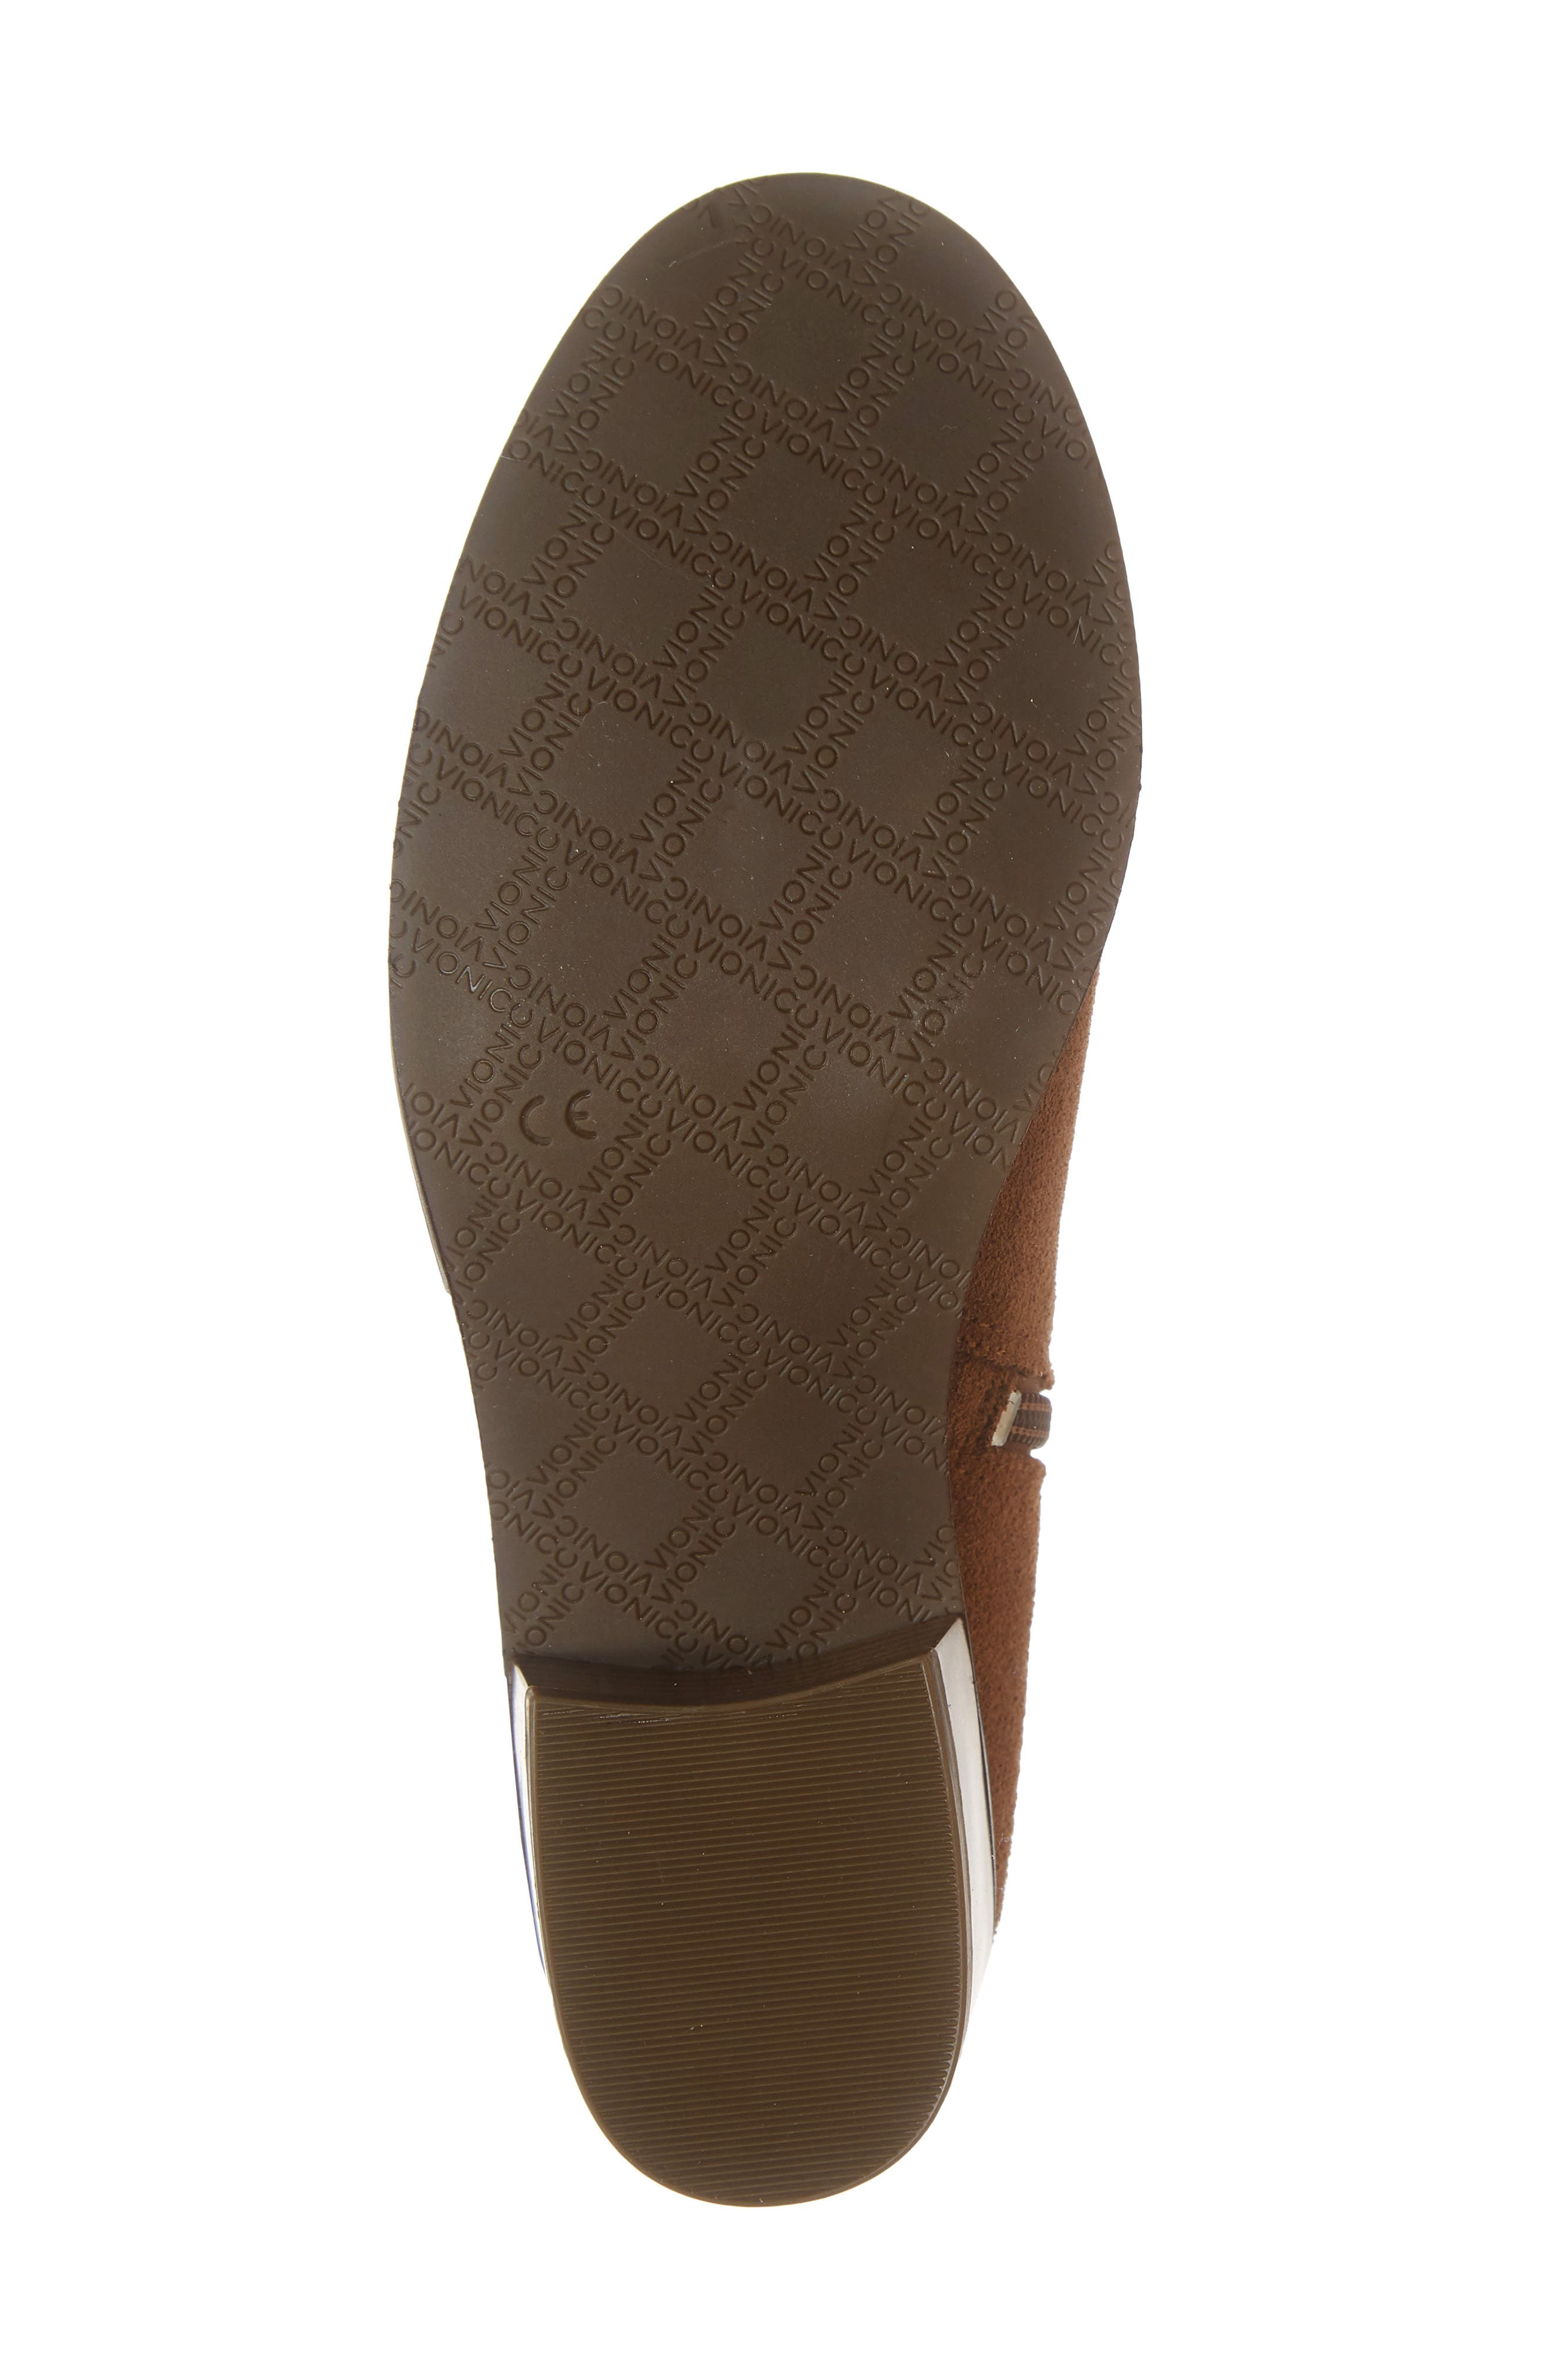 Kanela Low Slouchy Bootie,                             Alternate thumbnail 6, color,                             TOFFEE SUEDE